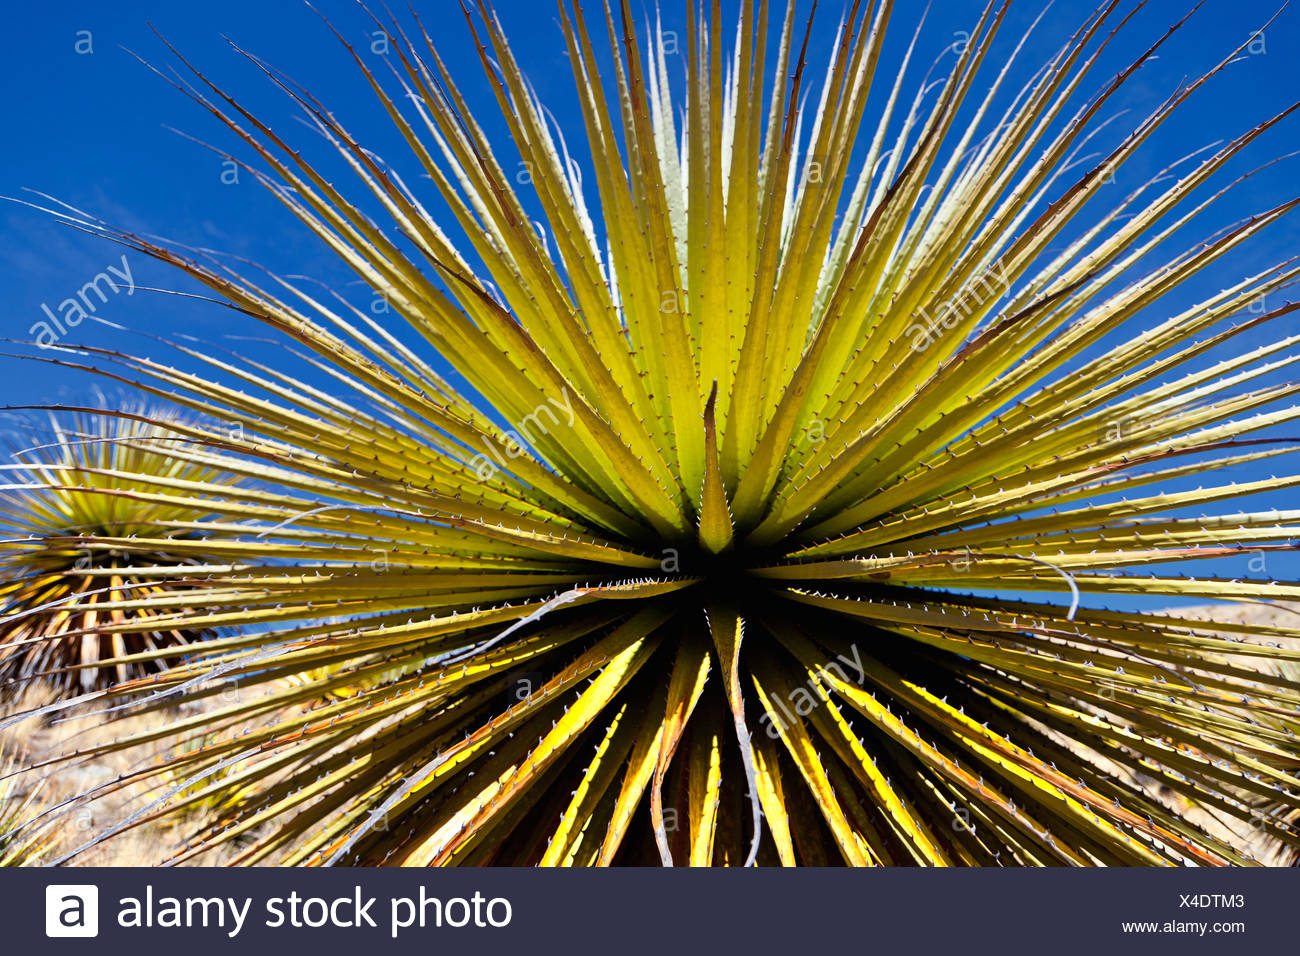 Queen of the Andes (Puya raimondii), Cordillera Huayhuash, Andes, Peru, South America Stock Photo